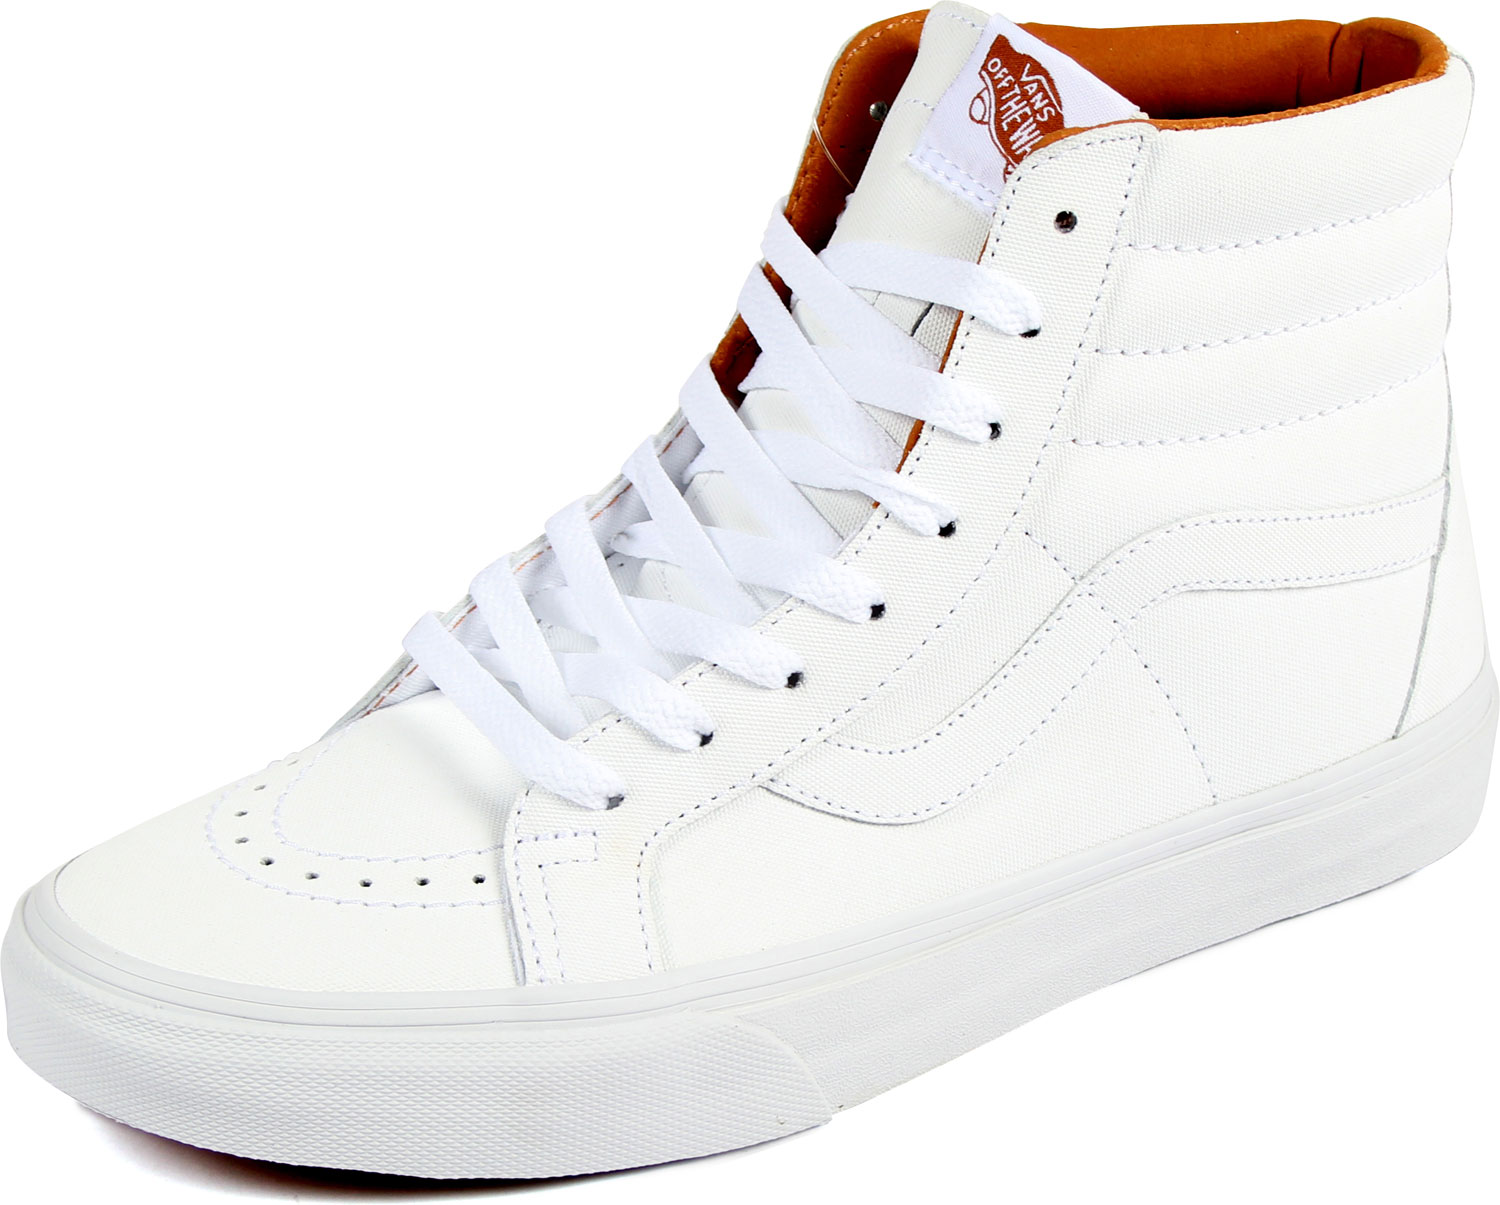 e50427880a3b27 Vans - Unisex Sk8-Hi Reissue Shoes in (Xtuff) True White Bran